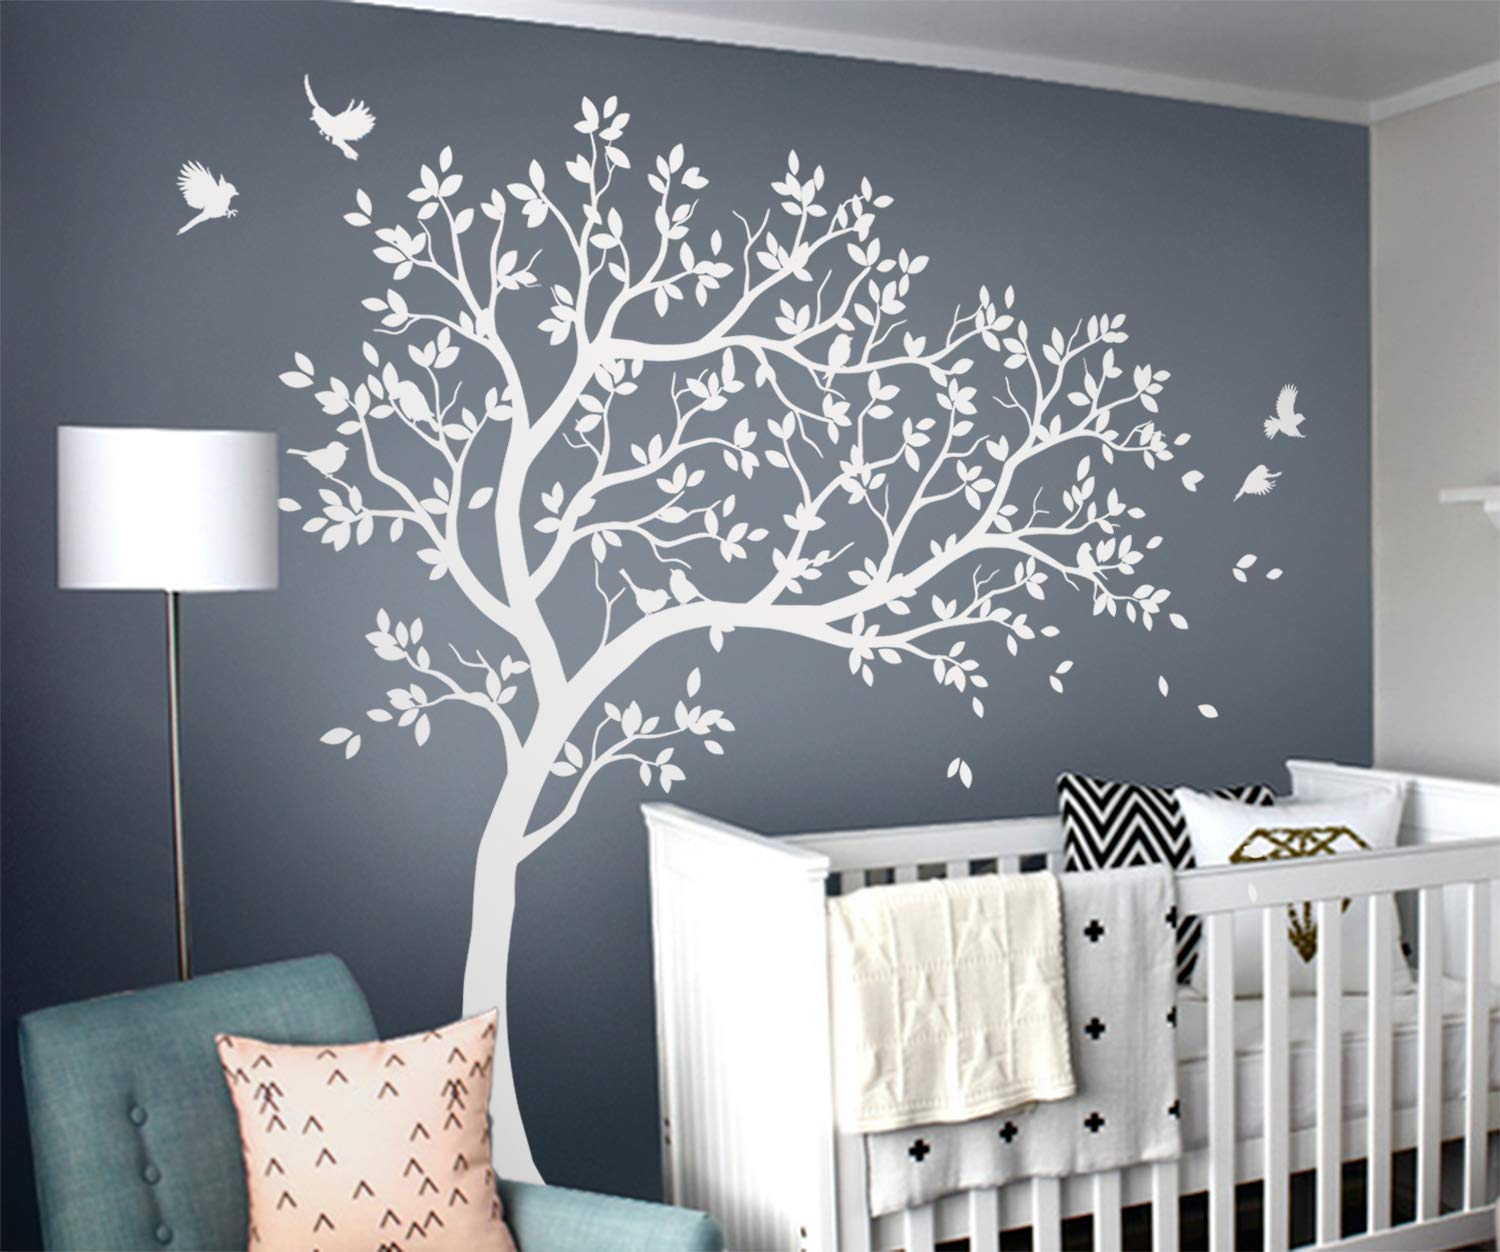 081 Tree wall decal Large tree wall decals Huge nursery wall decor wall mural decor Blossoms kids room wall decoration with cute owls